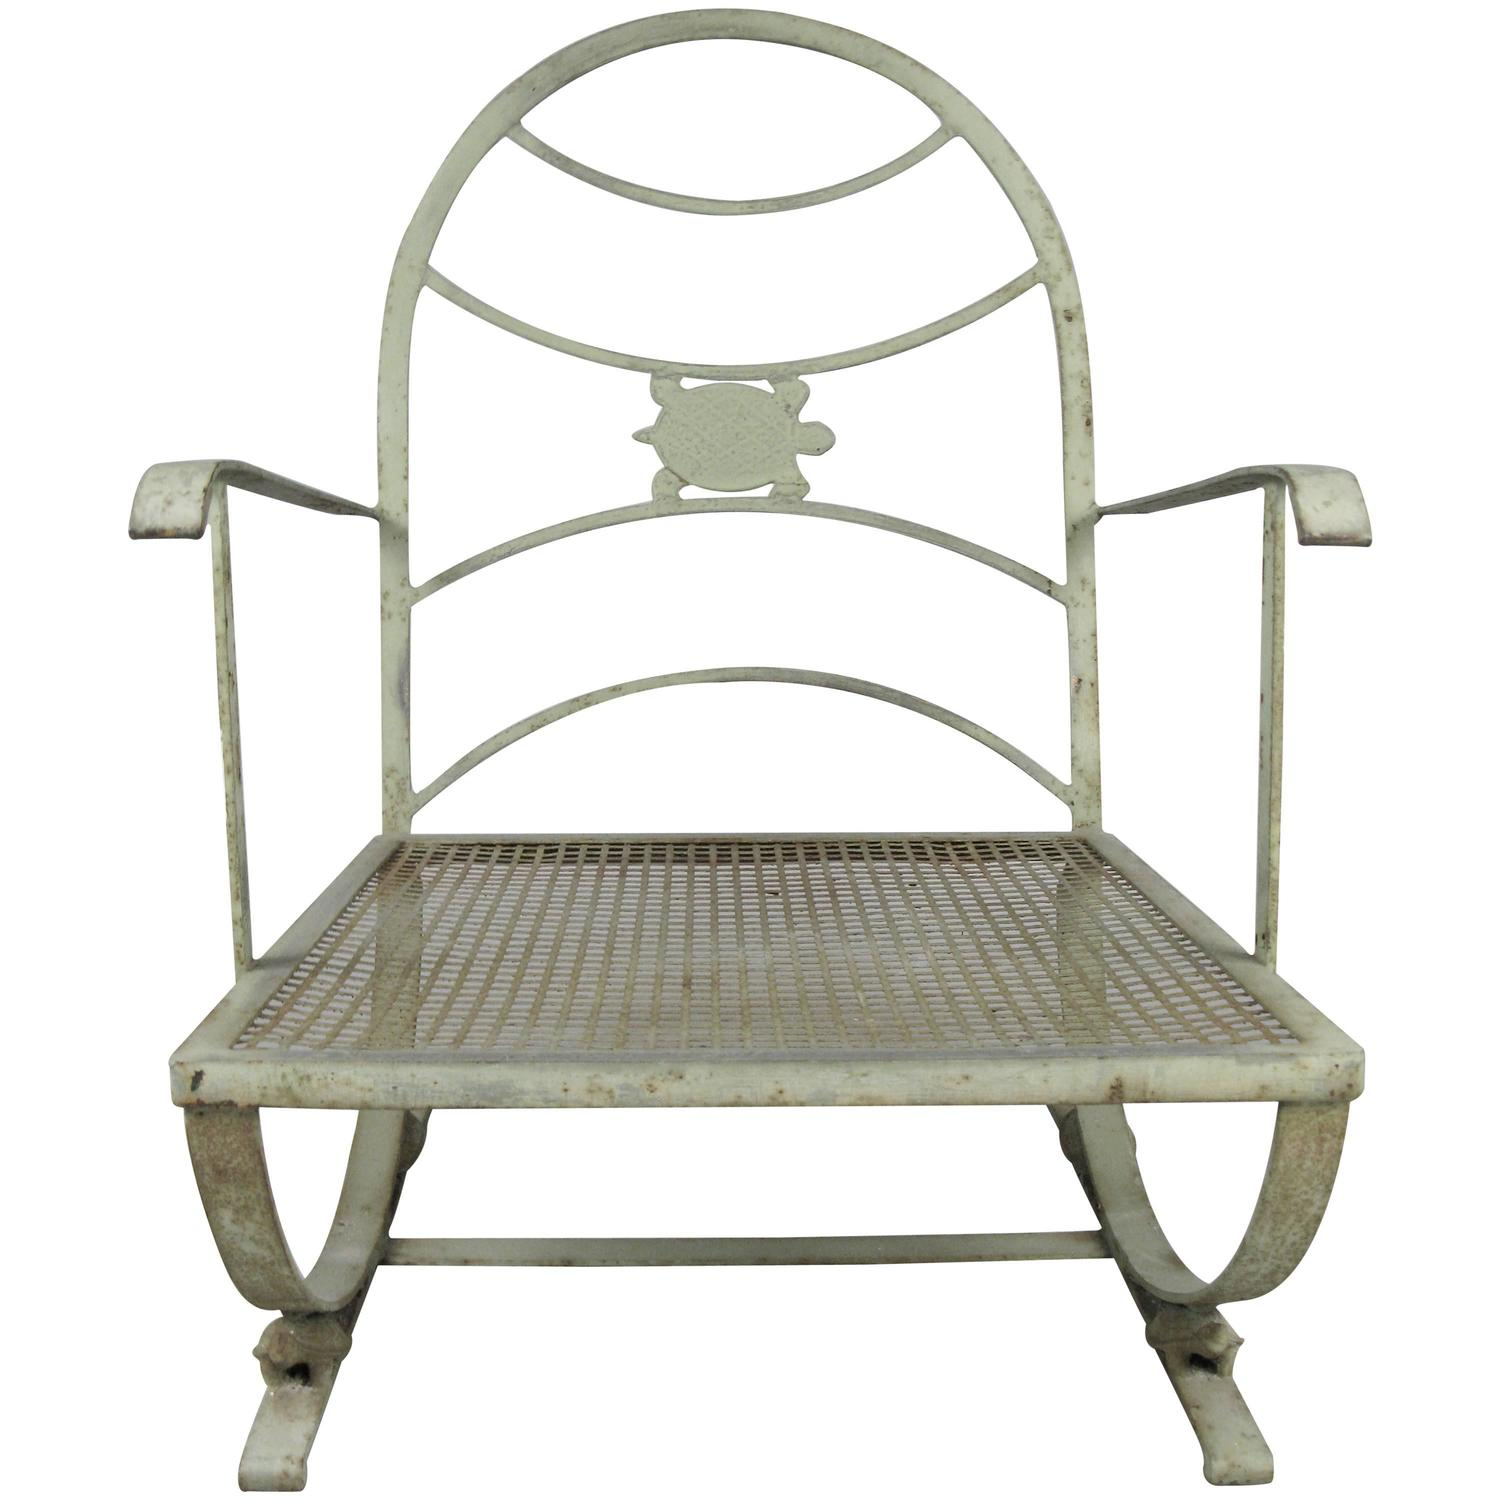 Vintage wrought iron turtle lounge chair at 1stdibs - Vintage wrought iron chairs ...